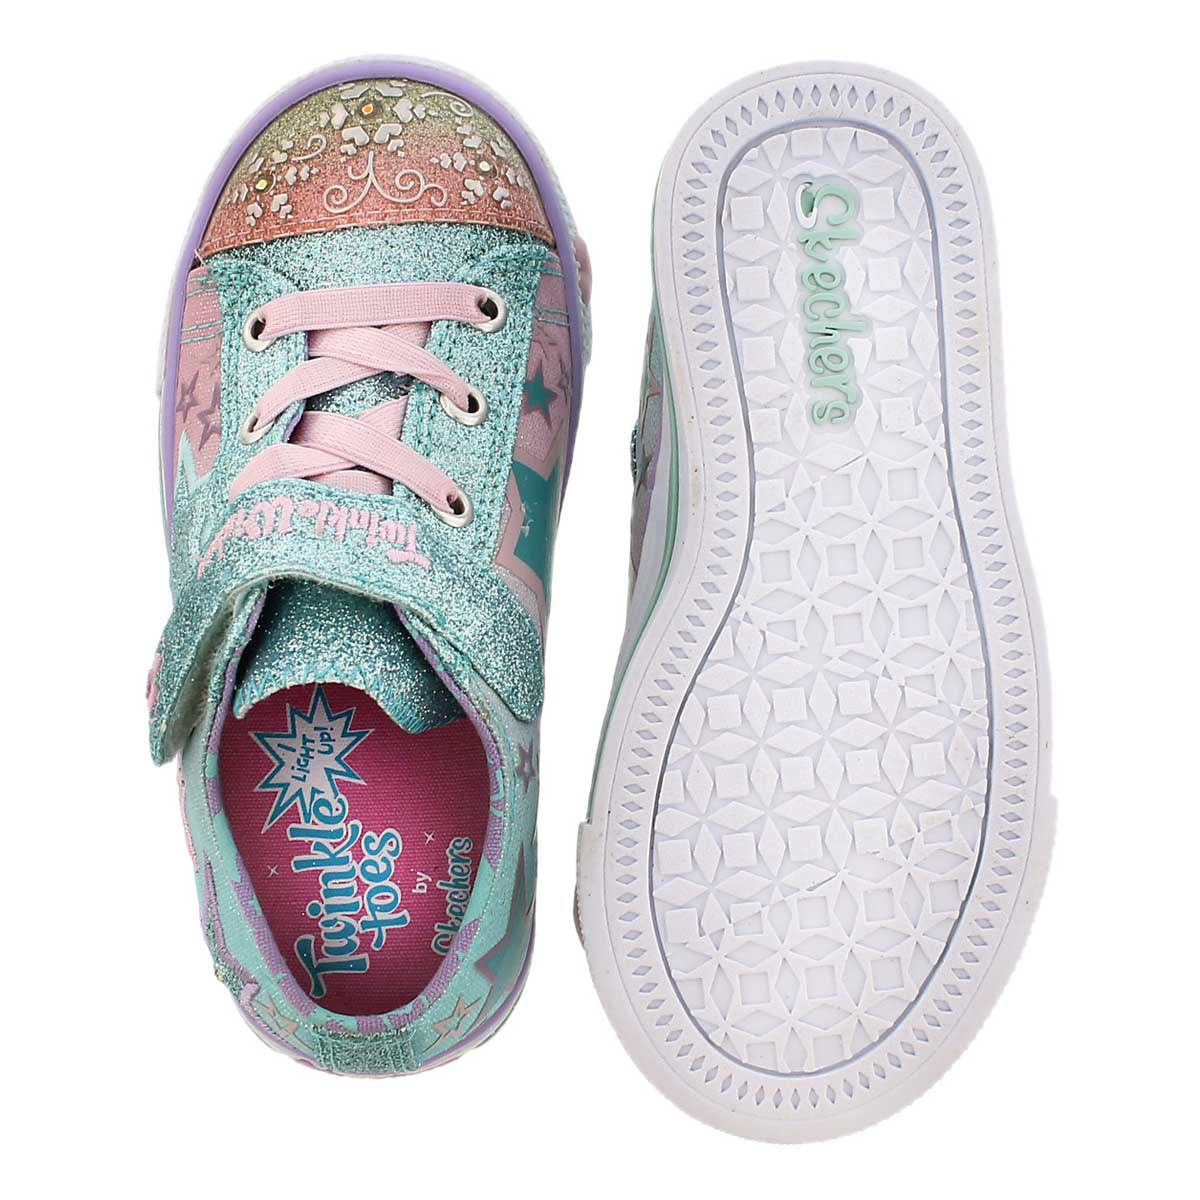 Inf Enchanters multi light up sneaker